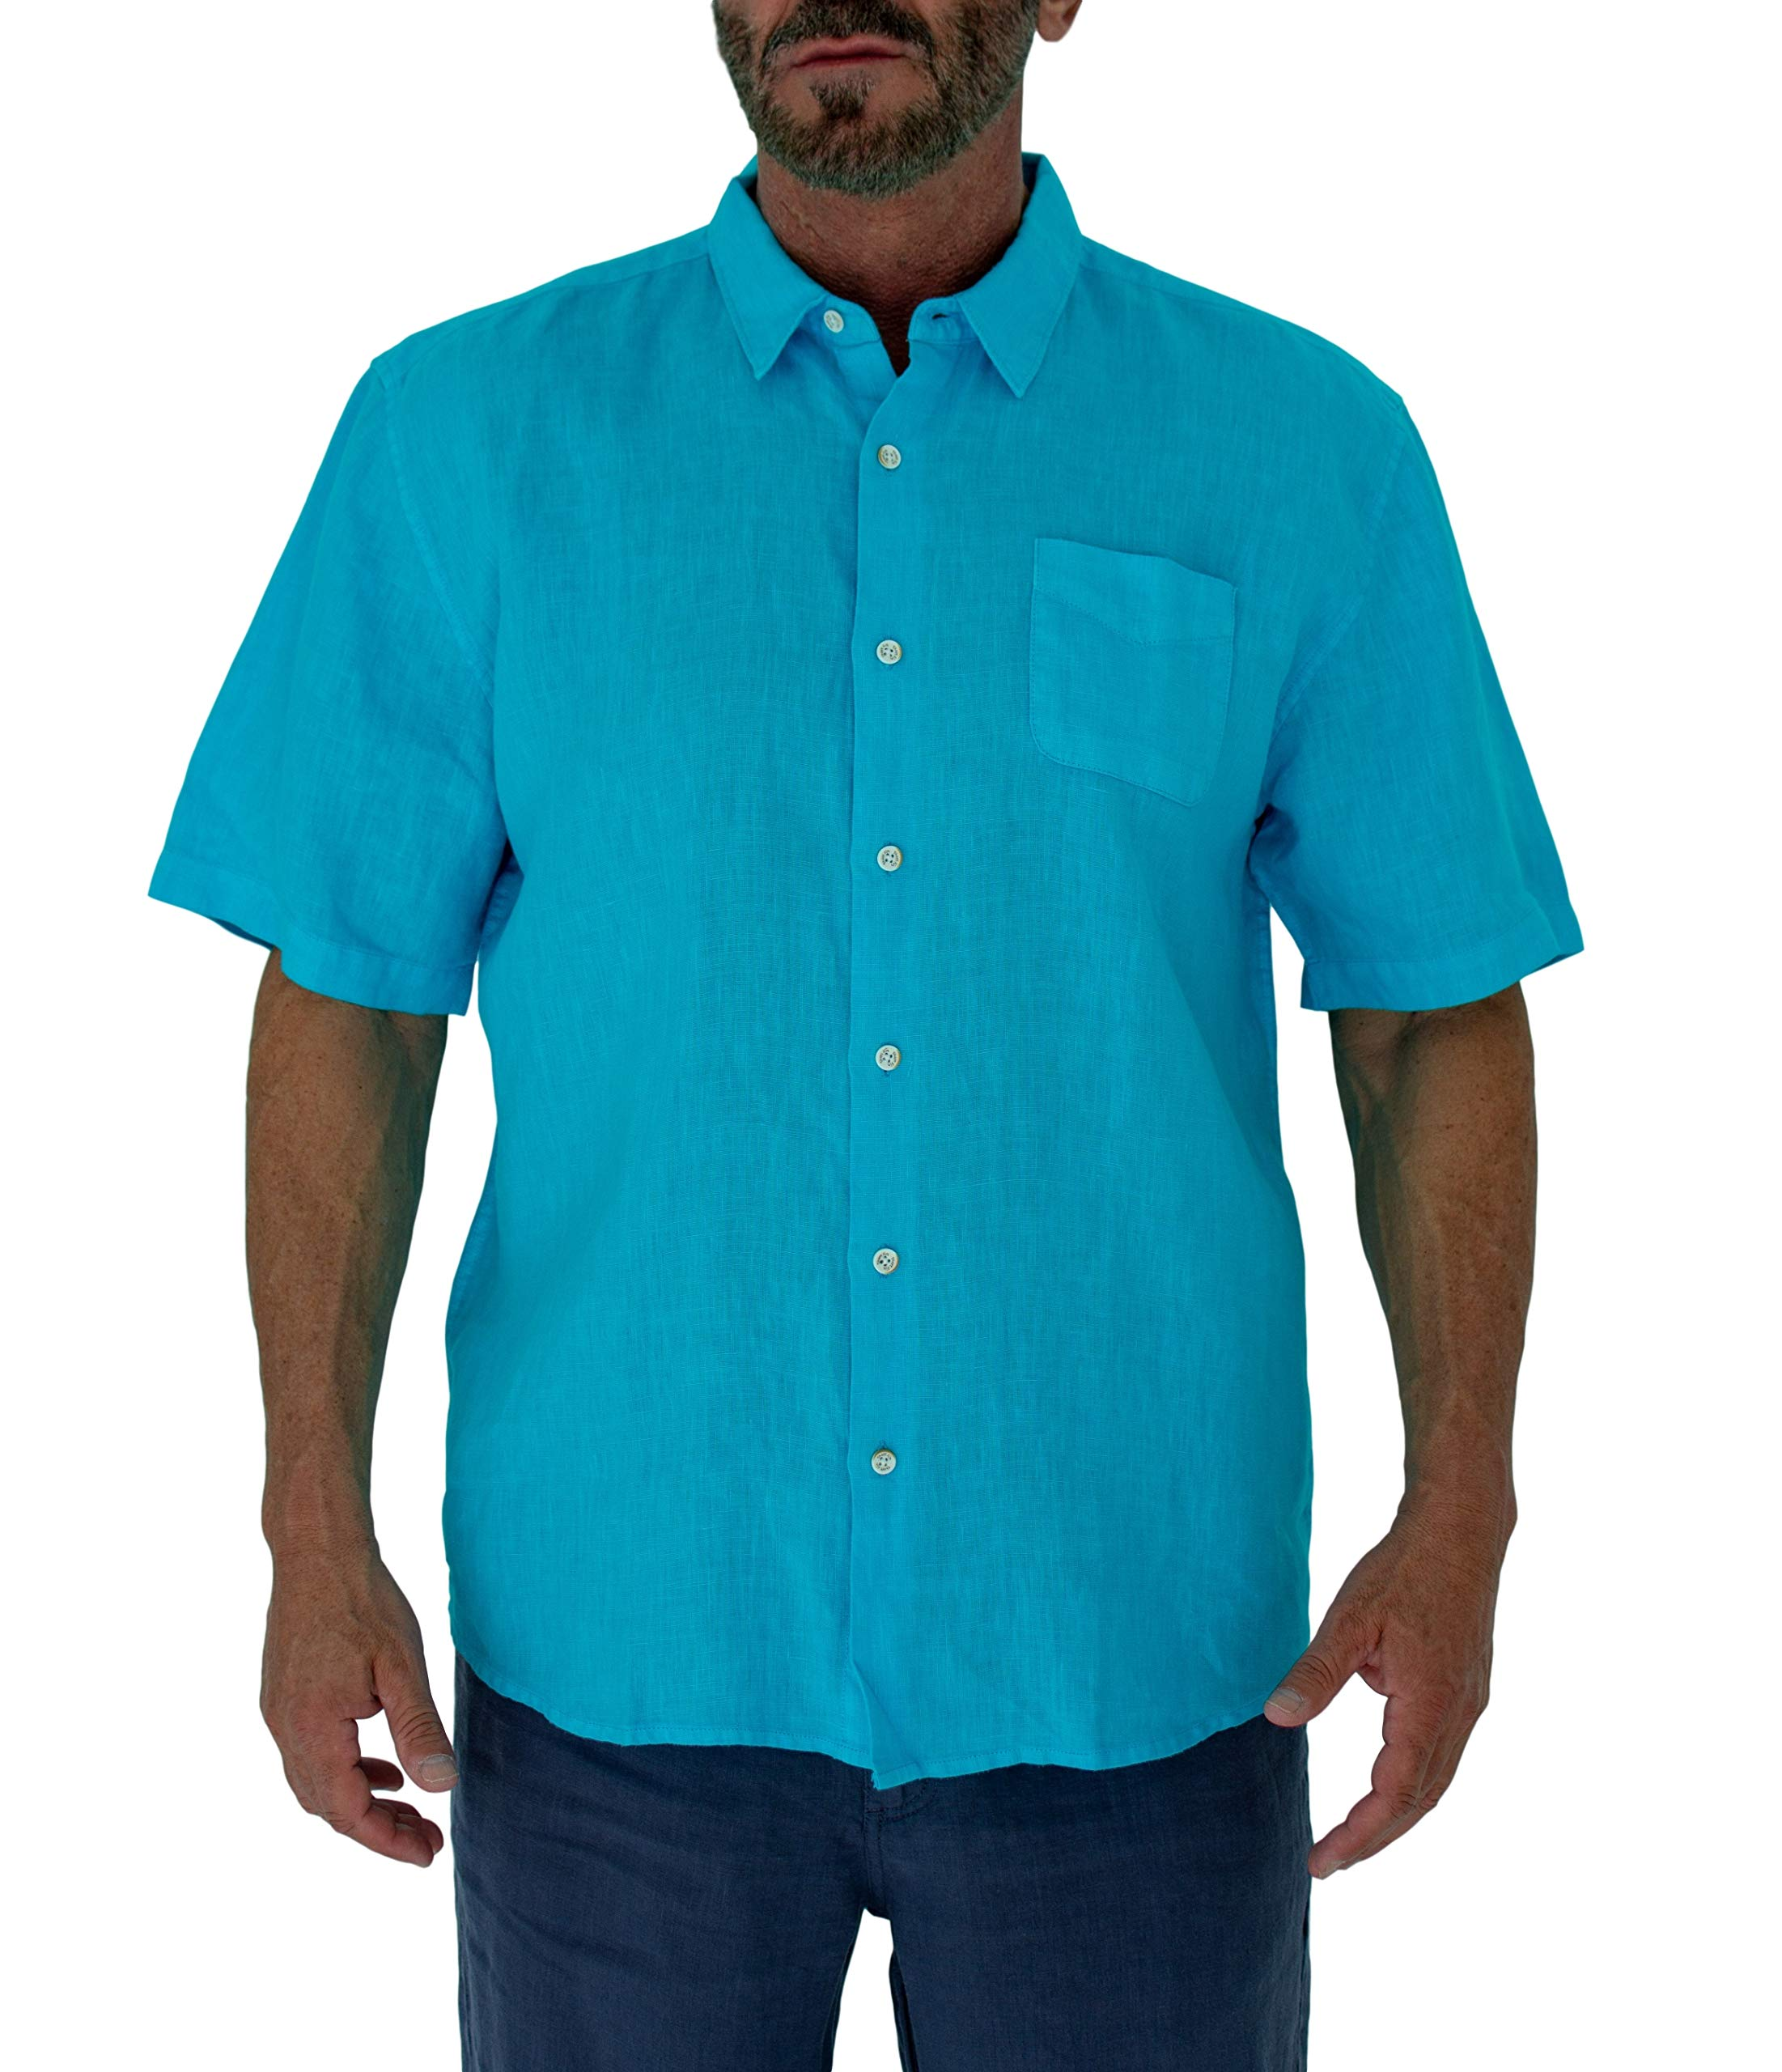 Short Fin Short Sleeve Button Down Linen Shirt (Size X Large, Neon Blue L8040L) by Short Fin (Image #1)